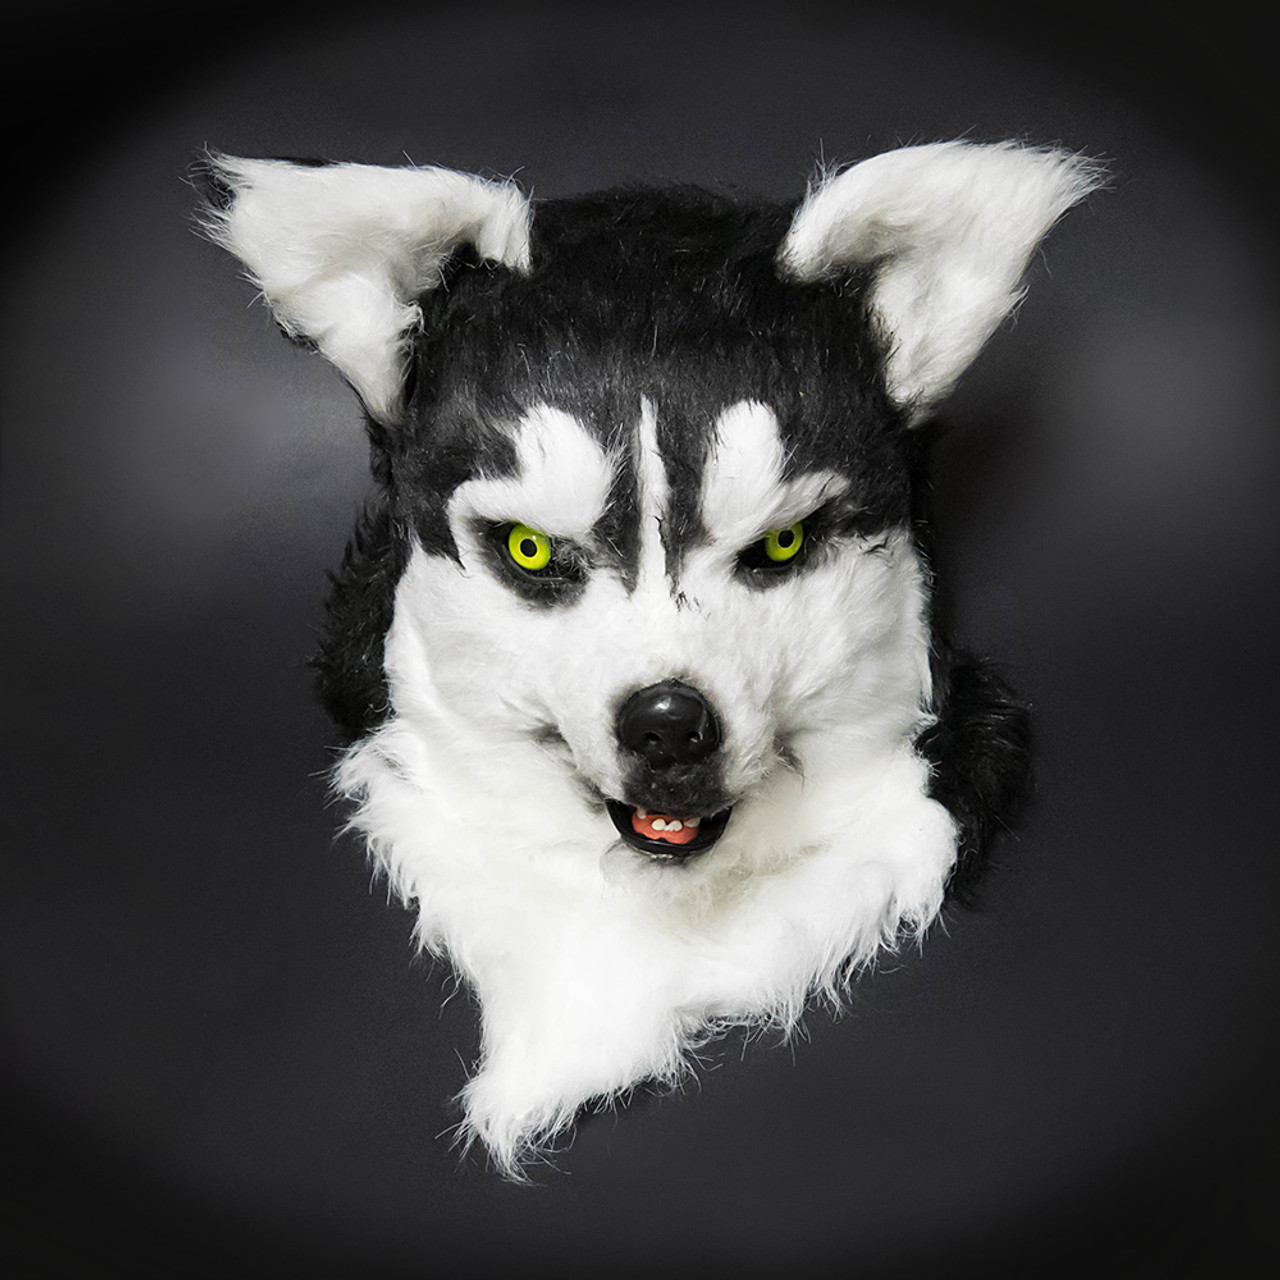 Wolf costume mask wolverine over the head mask black white wolf